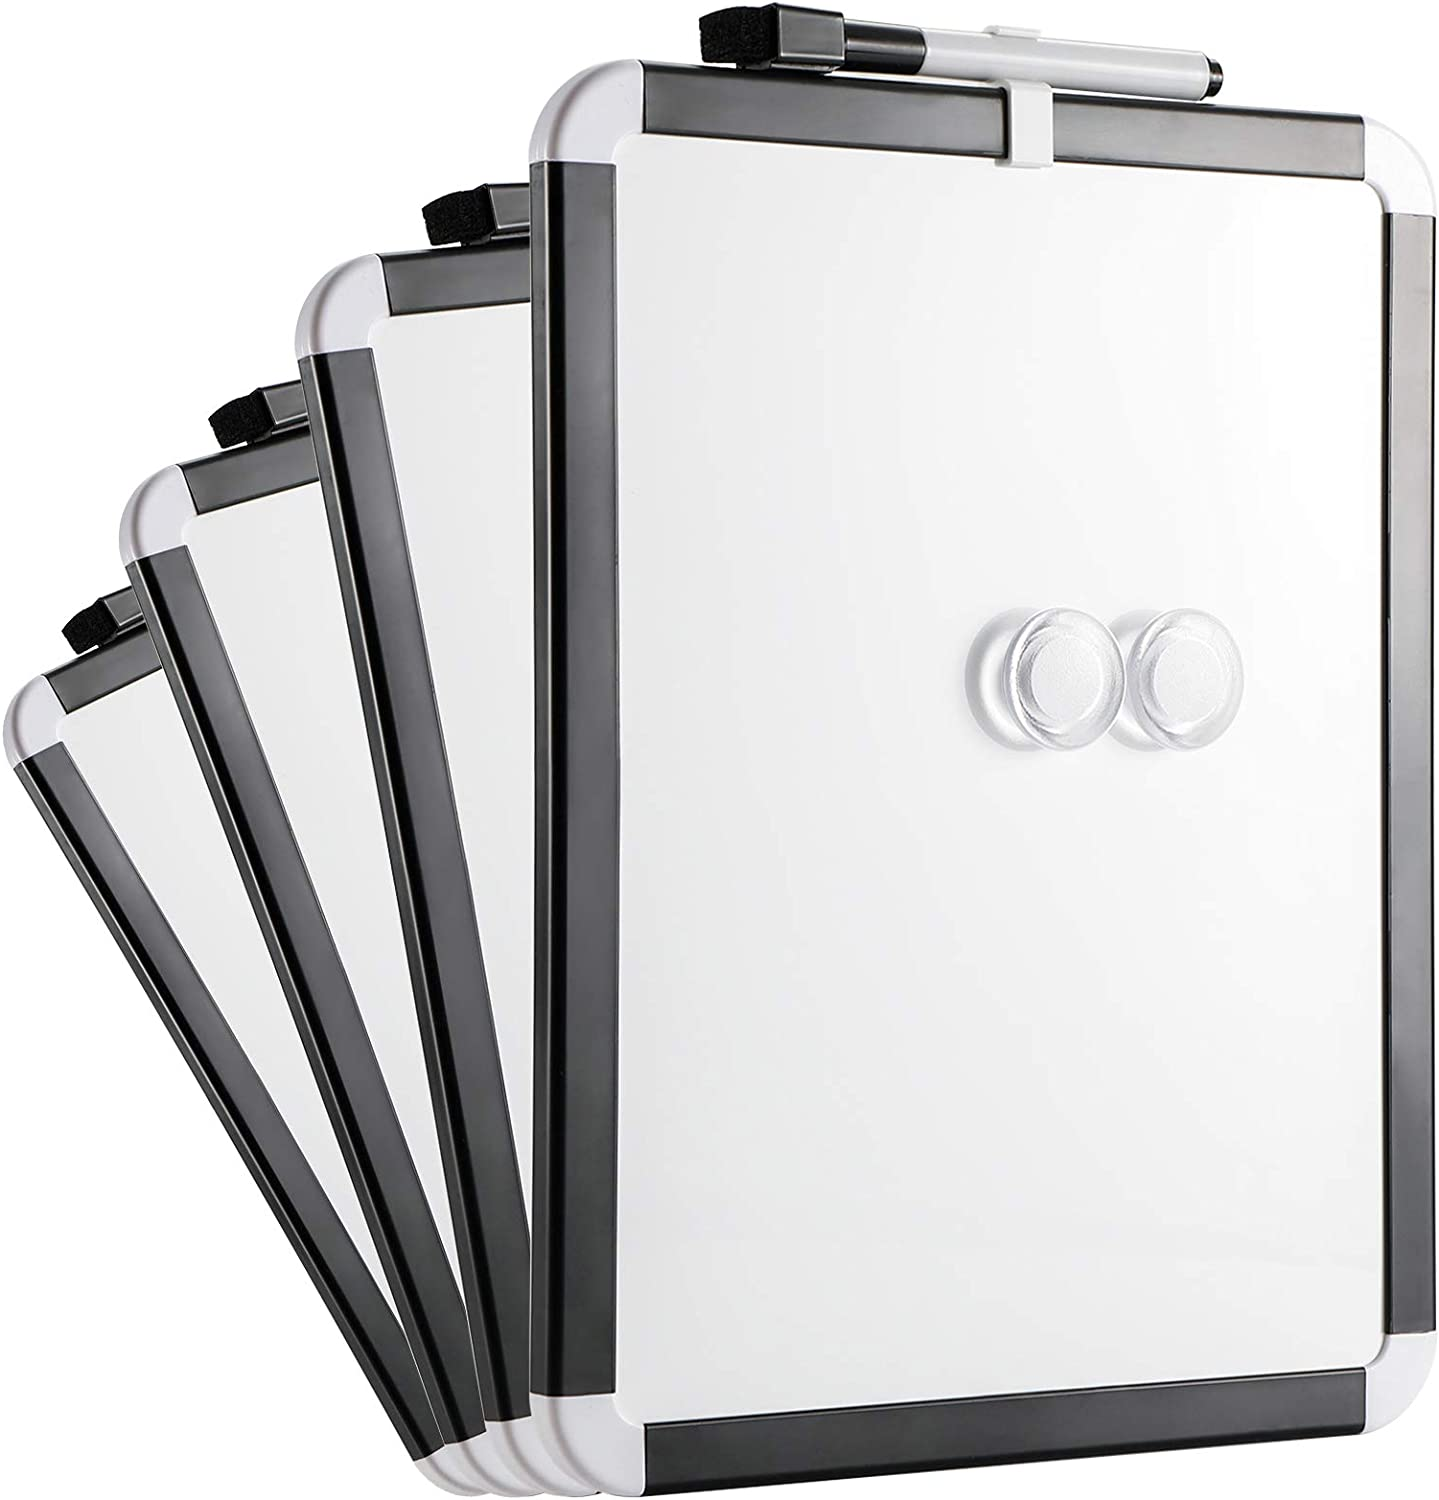 """Magnetic Dry Erase Board 8.5/""""x11/"""" With 1 Marker And 1 Magnet USA Seller!"""